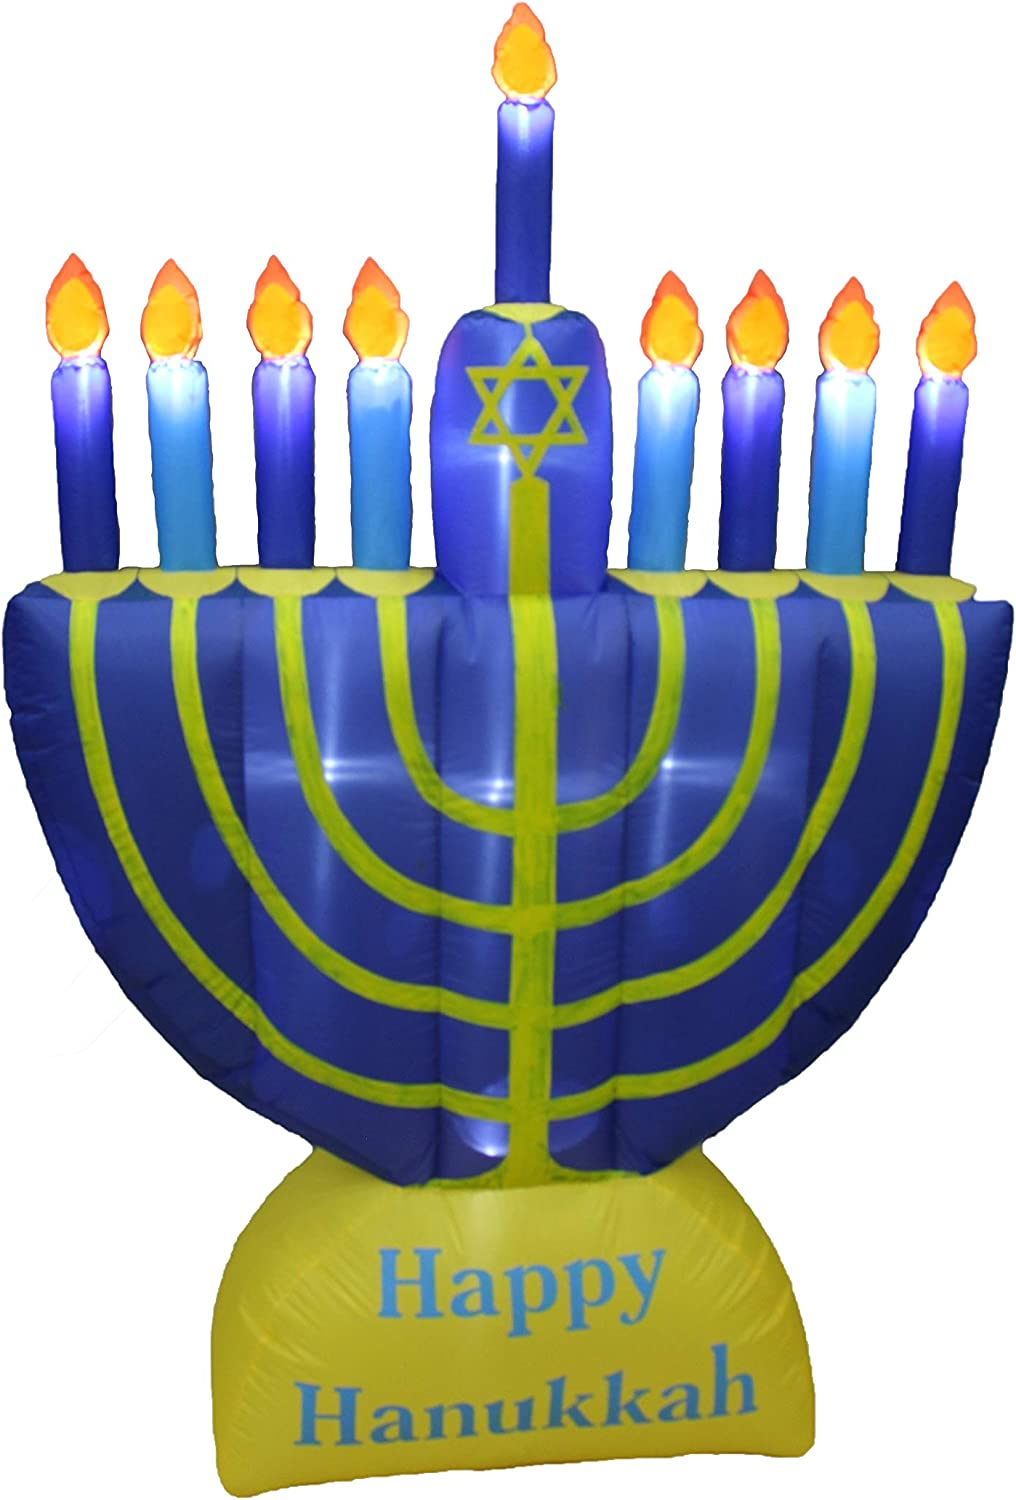 6 Foot Tall Inflatable Happy Hanukkah Menorah Candles Scene Outdoor Indoor Holiday Decorations, Blow Up LED Lights Lighted Yard Decor, Giant Lawn Inflatables for Home Family Party